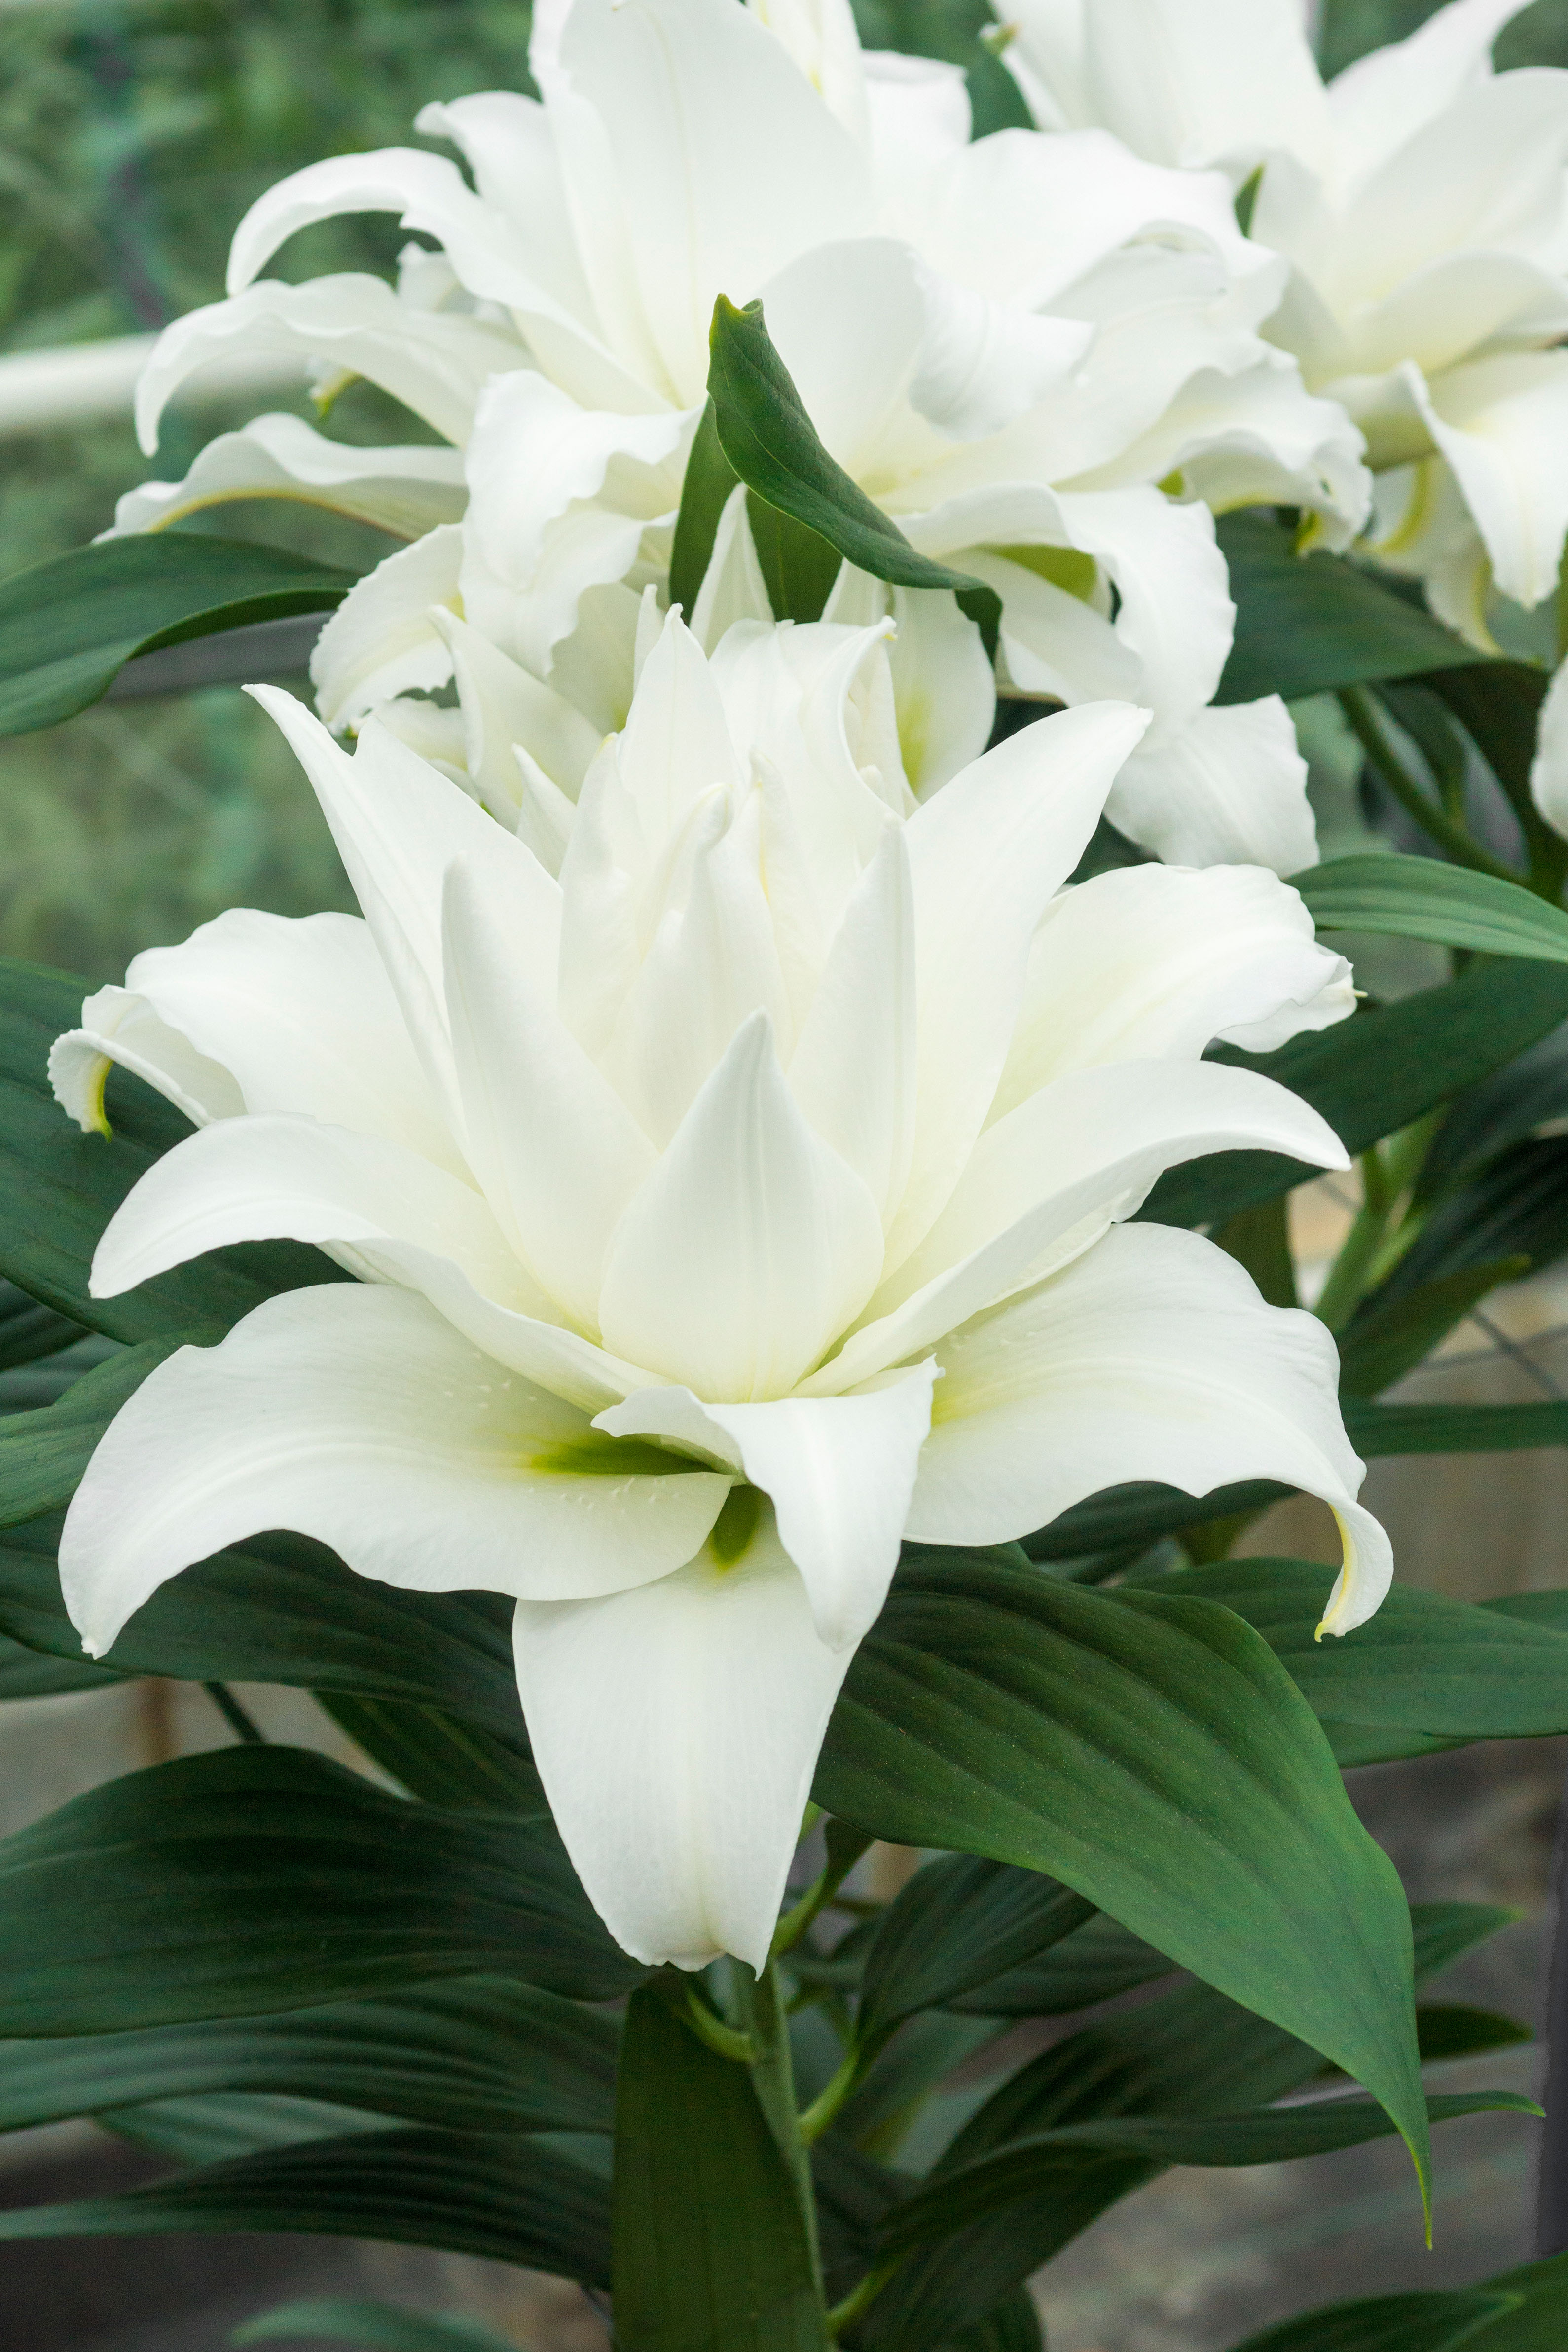 Bloomsz My Wedding Lily 5 Pack